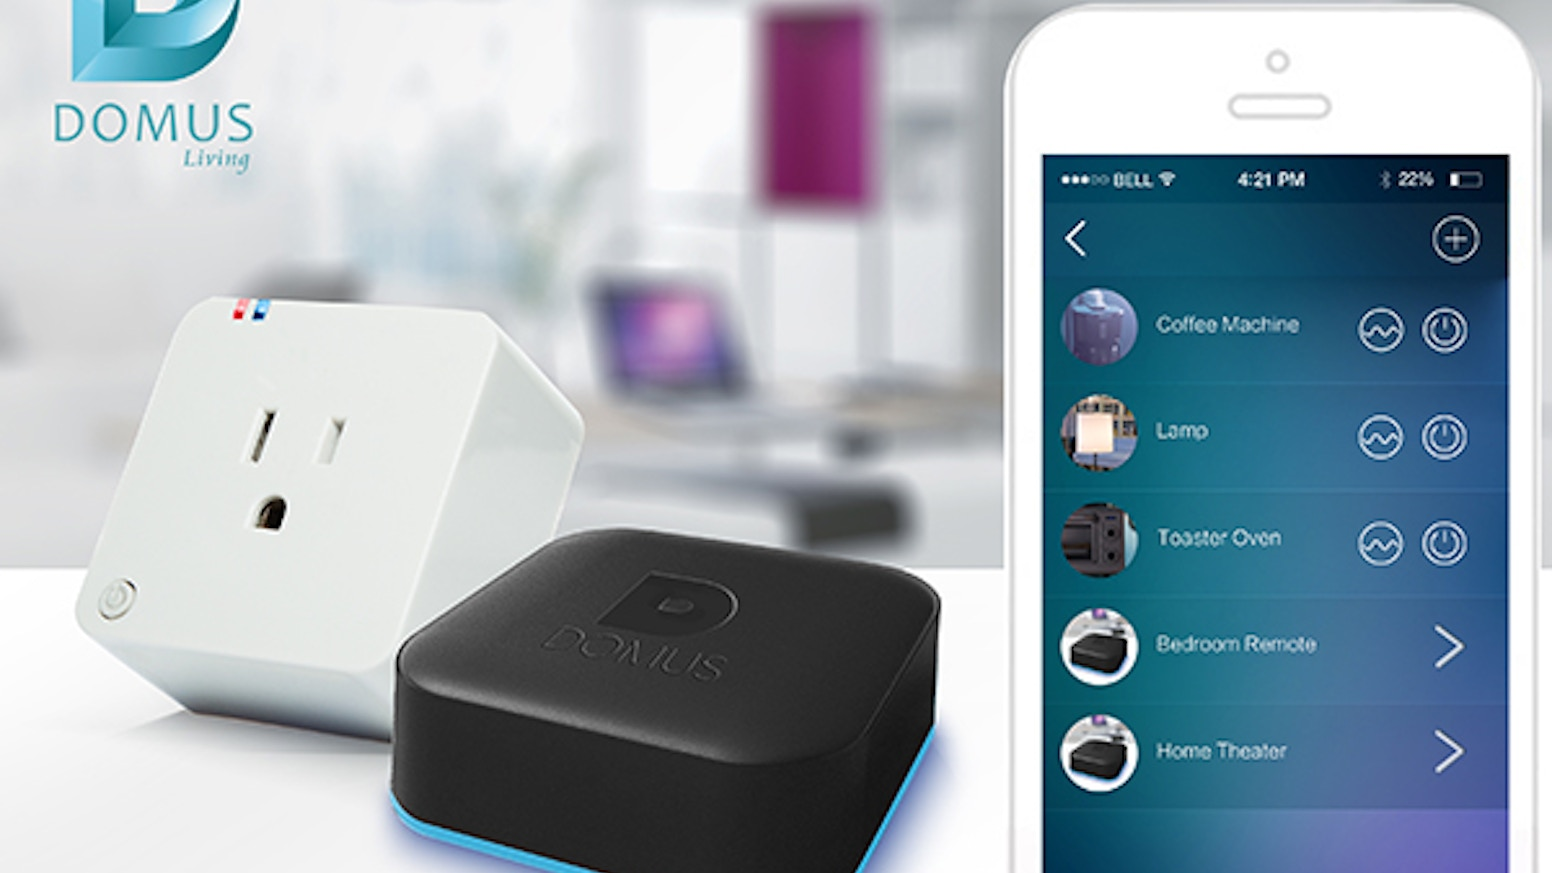 An affordable smart home-automation solution. Monitor and save energy, remote access via Android and iPhone. Worldwide compatibility